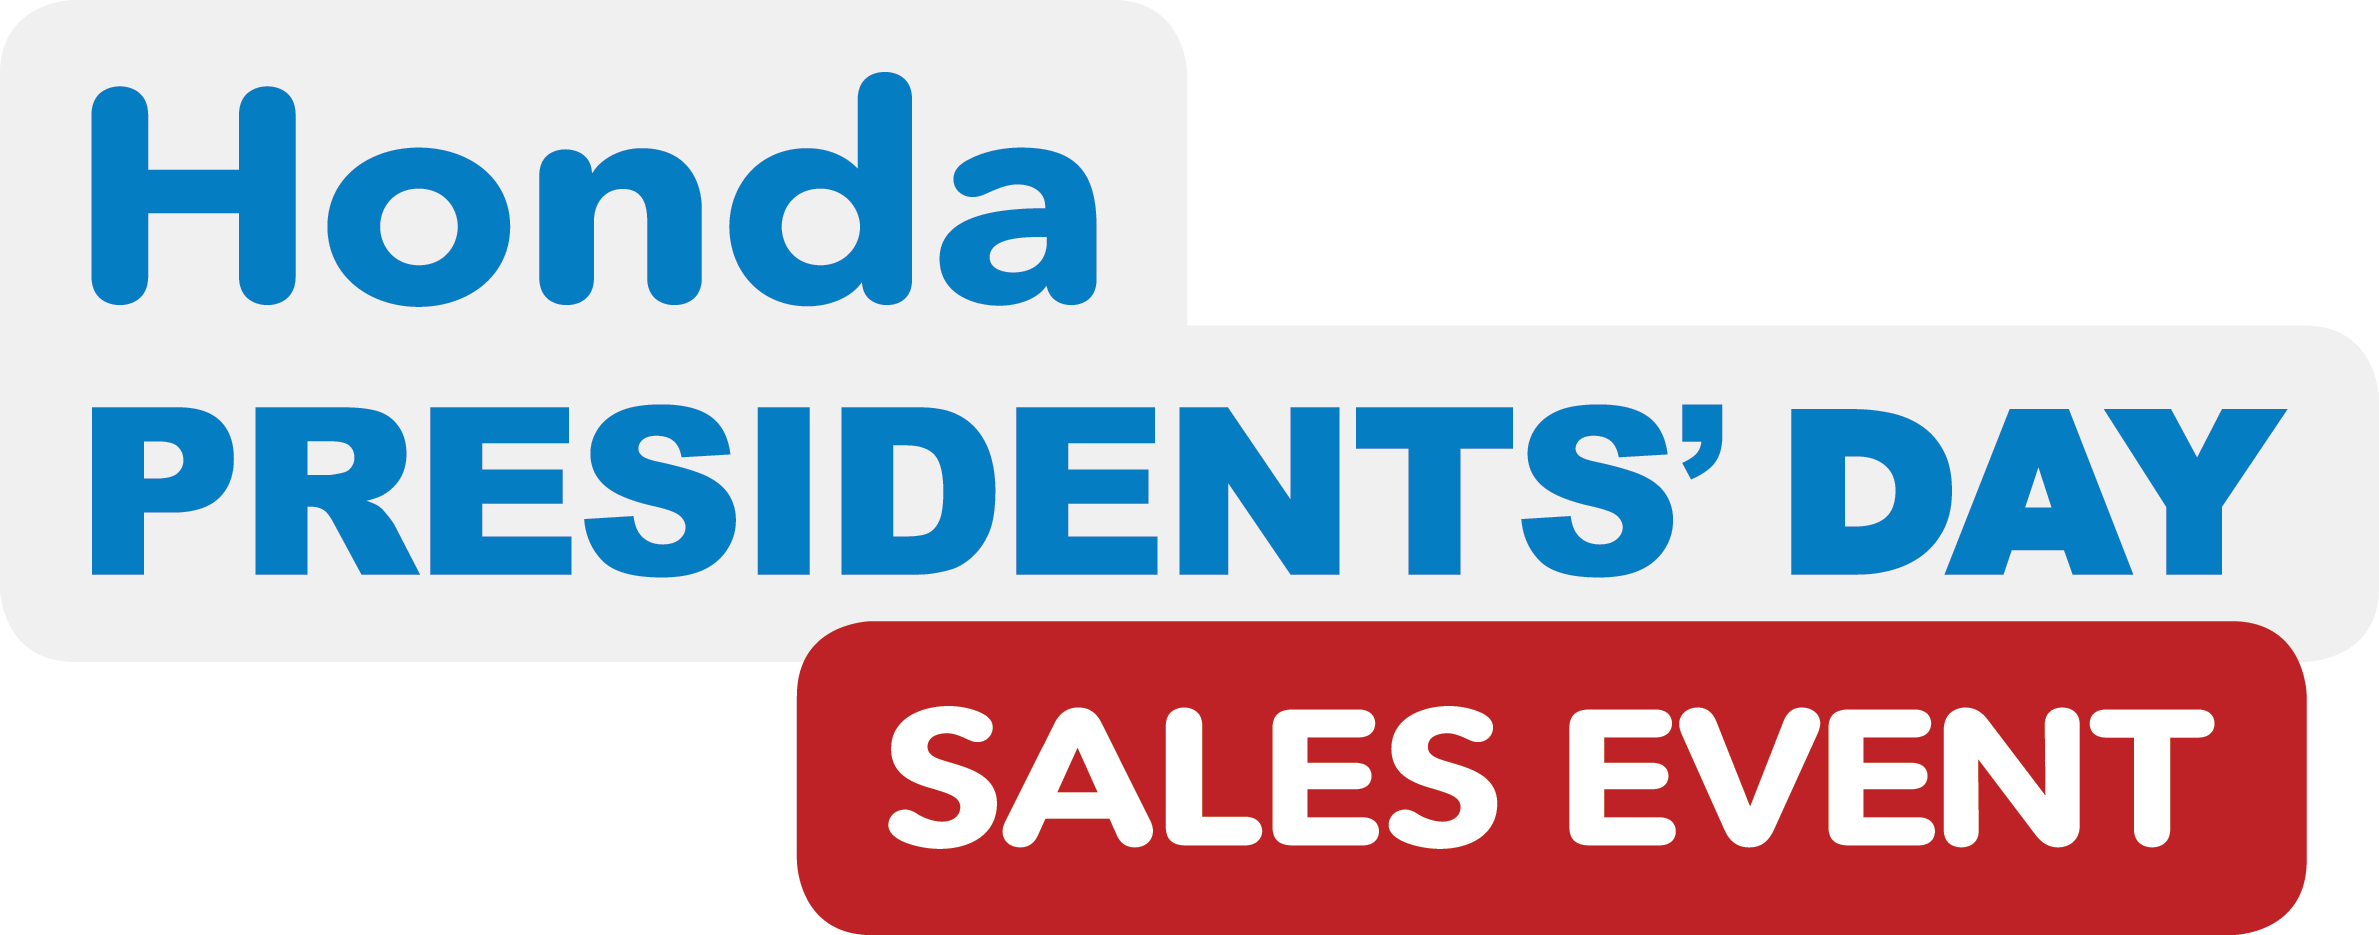 Honda Presidents Day Sale Event